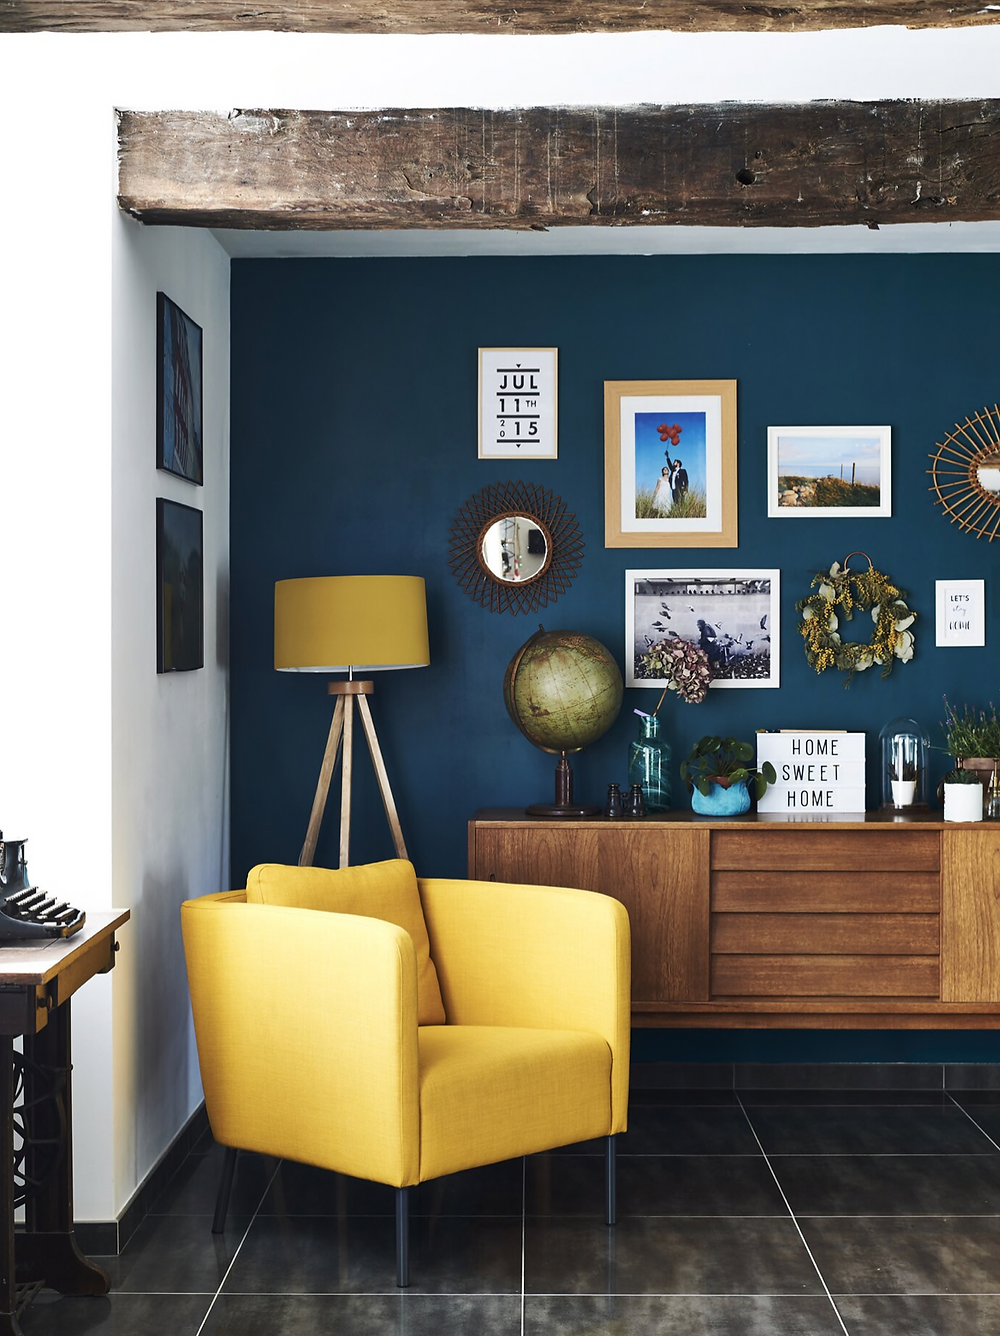 Yellow floor lamp yellow accent chair mid century sideboard typewriter gallery wall globe home sweet home sign with vases and plants blue background wall